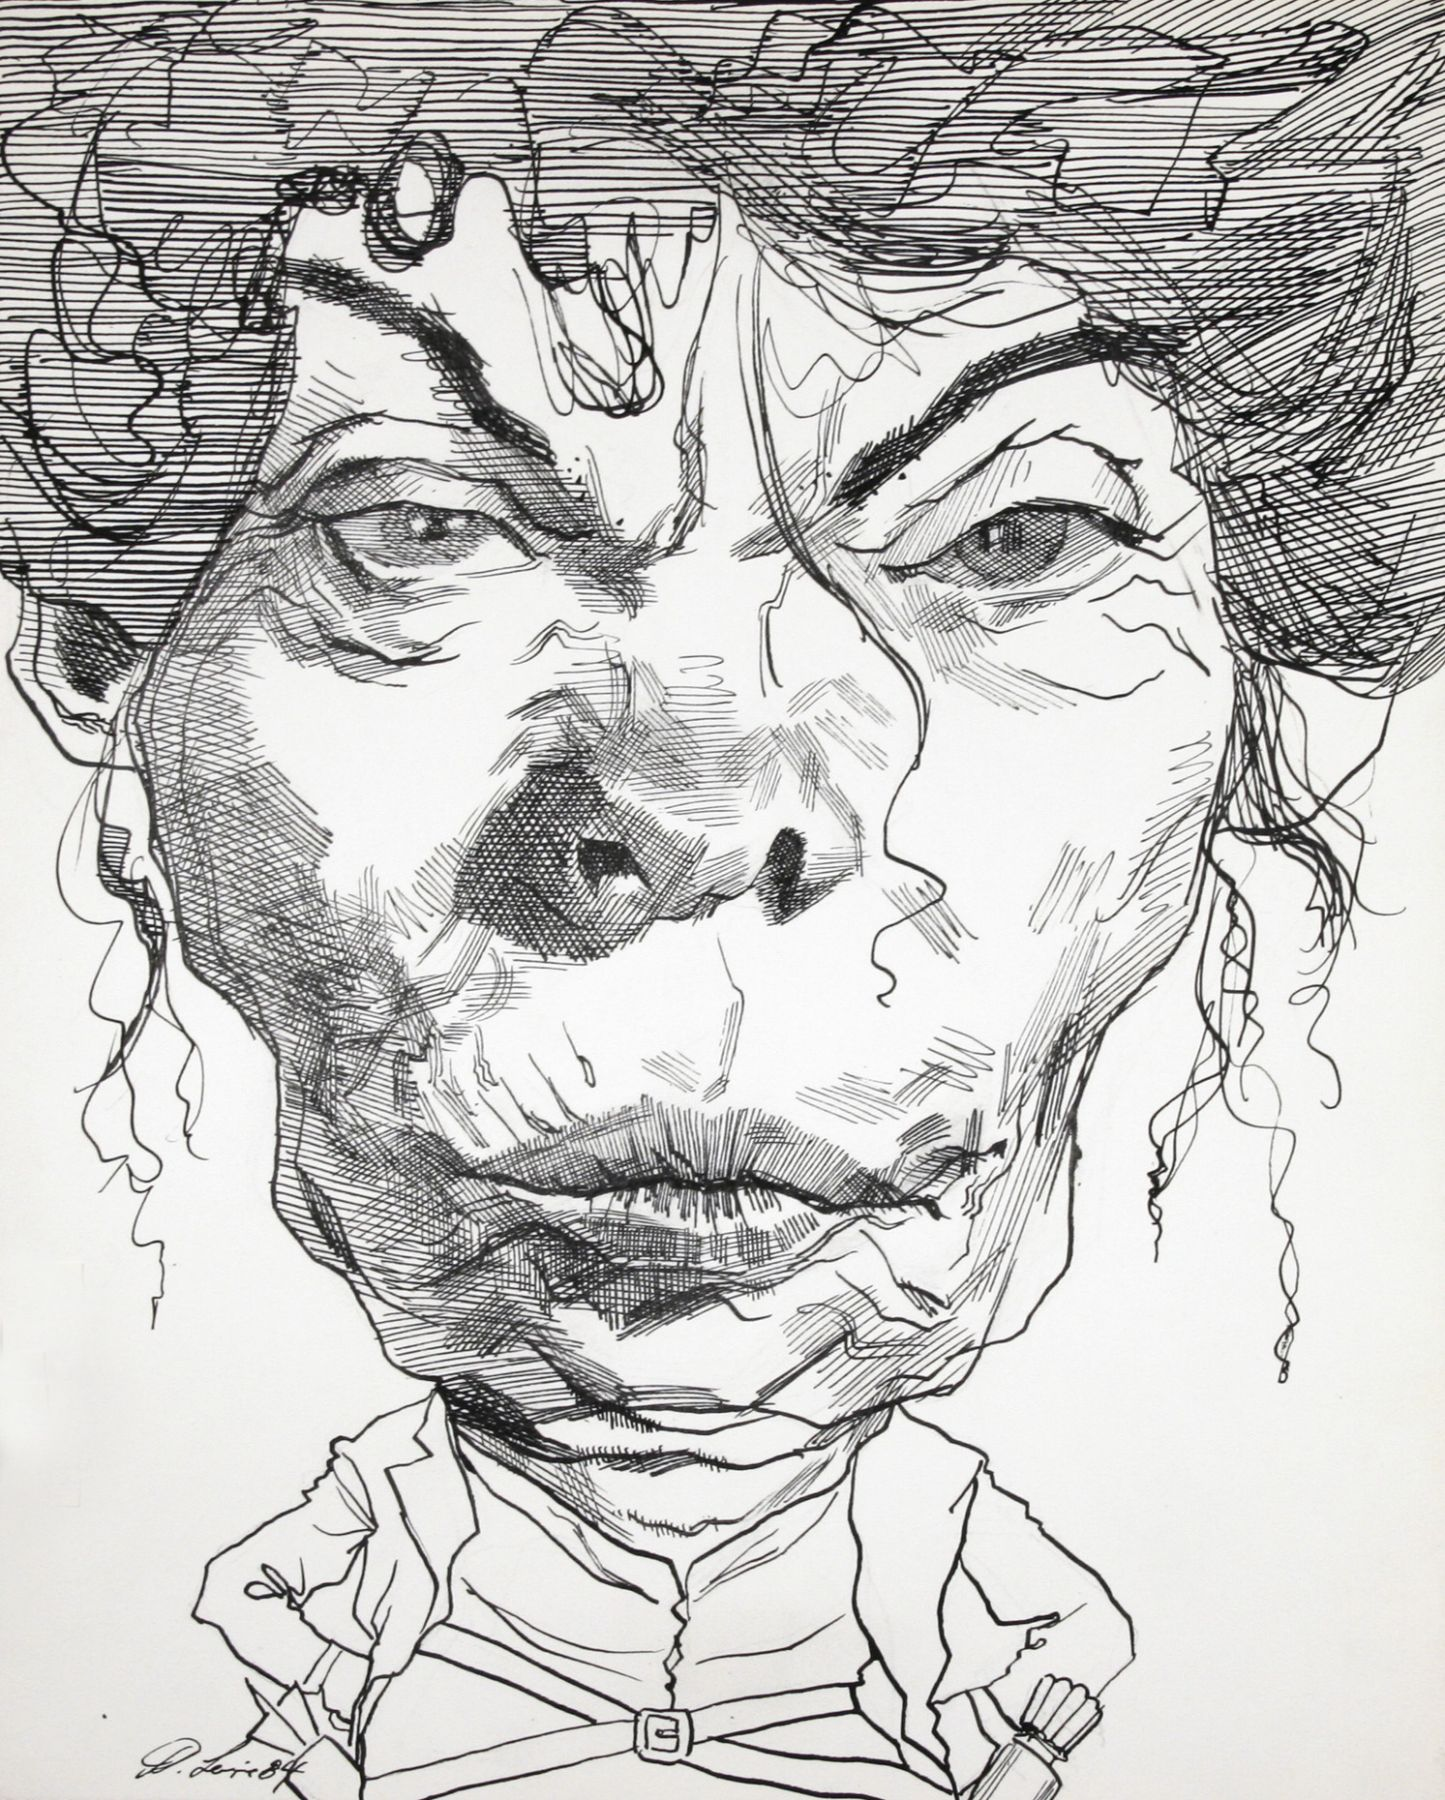 David Levine, Jean Kirkpatrick, 1984, ink on paper, 13 1/2 x 11 inches